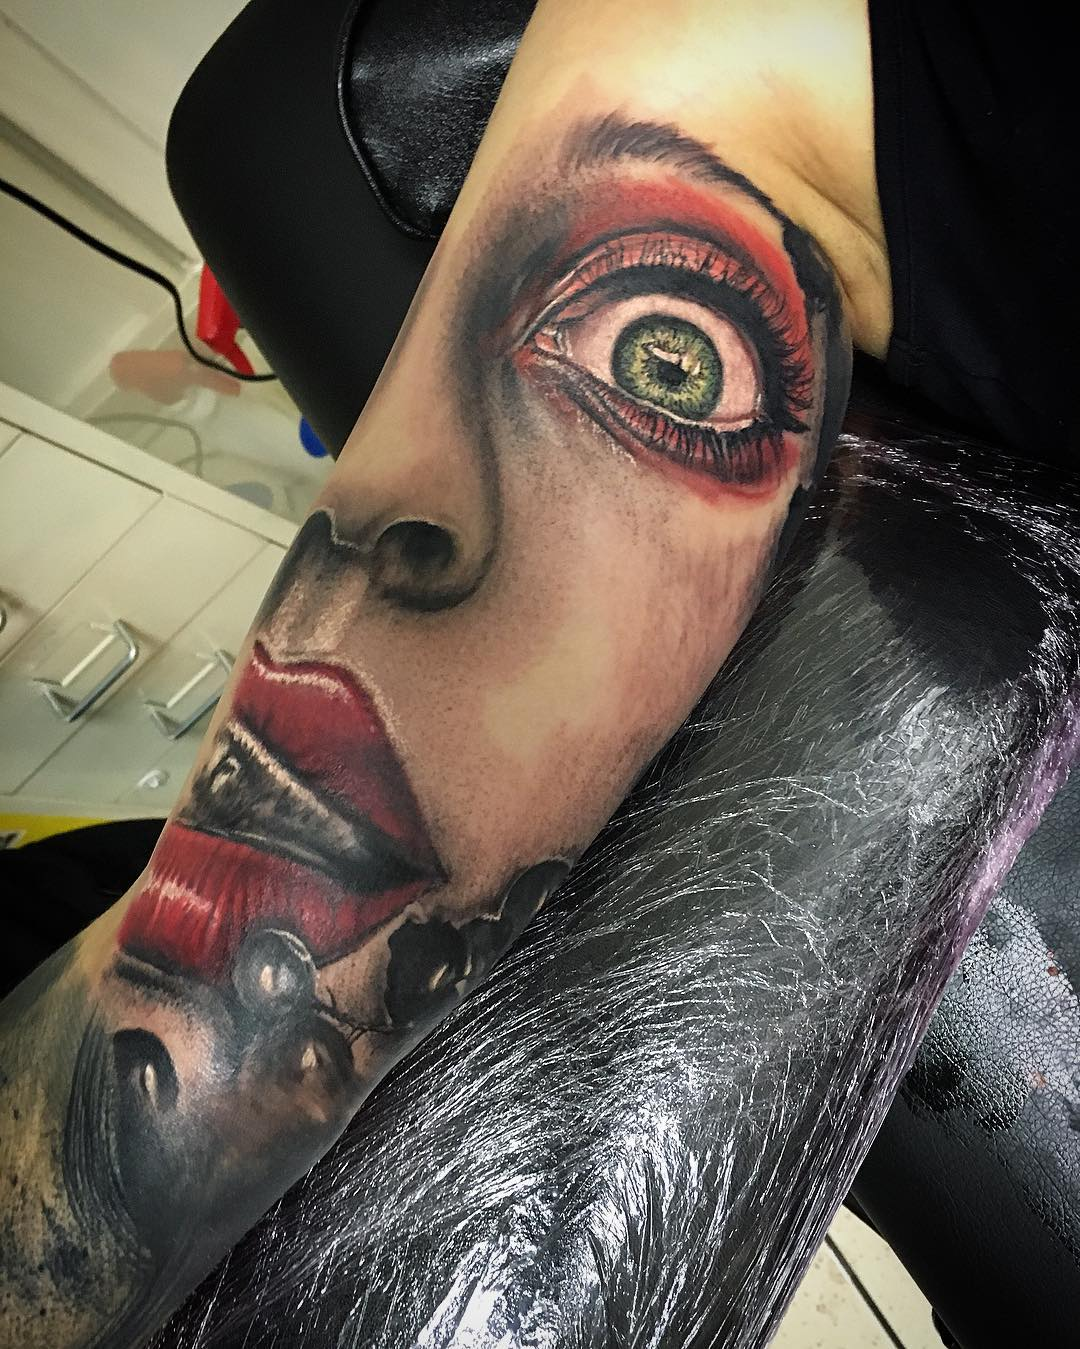 Crazy Face tattoo on bicep